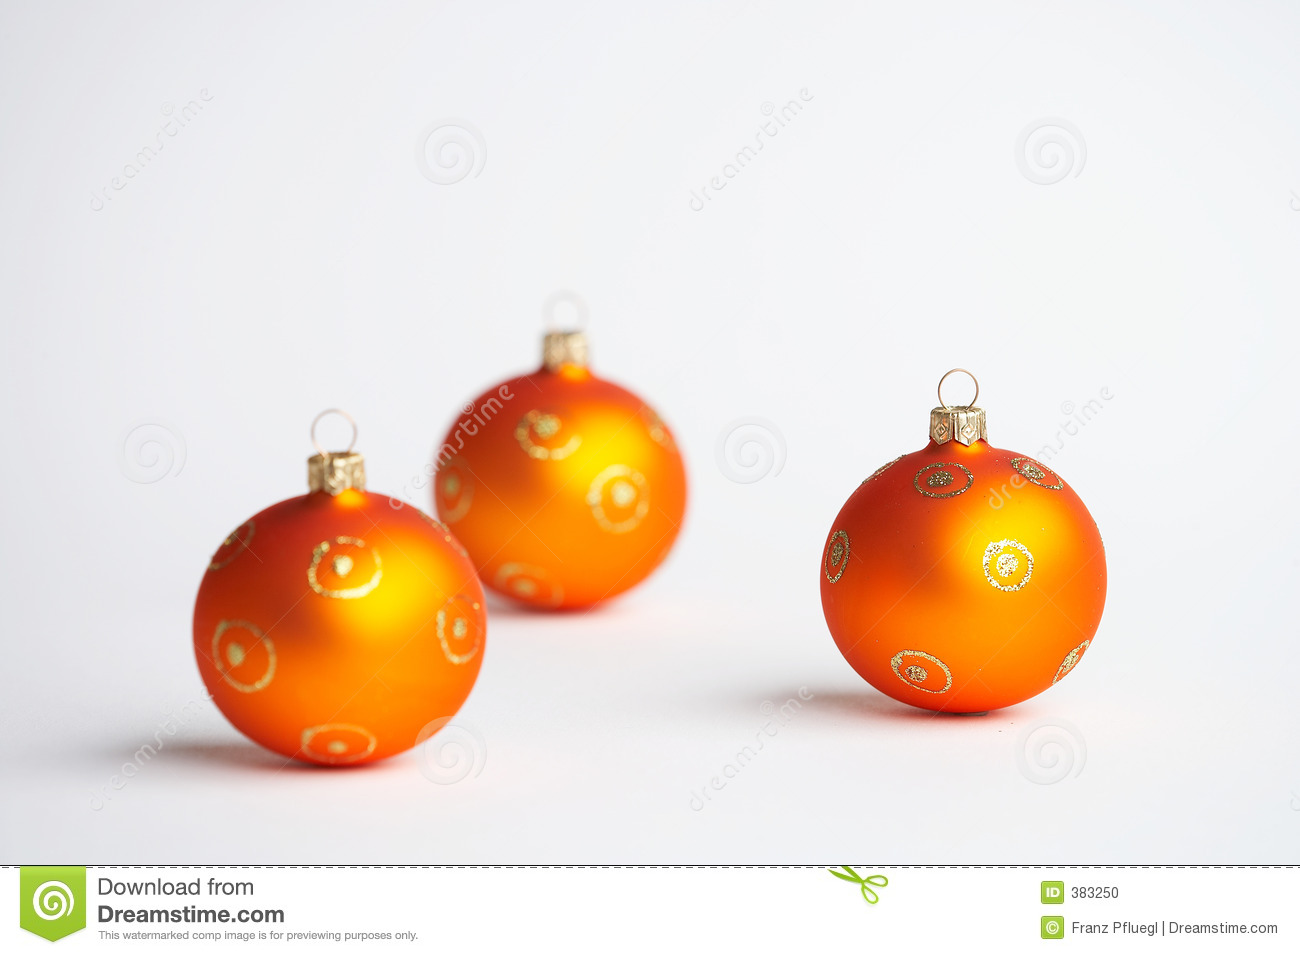 royalty free stock photo download orange christmas tree - Orange Christmas Tree